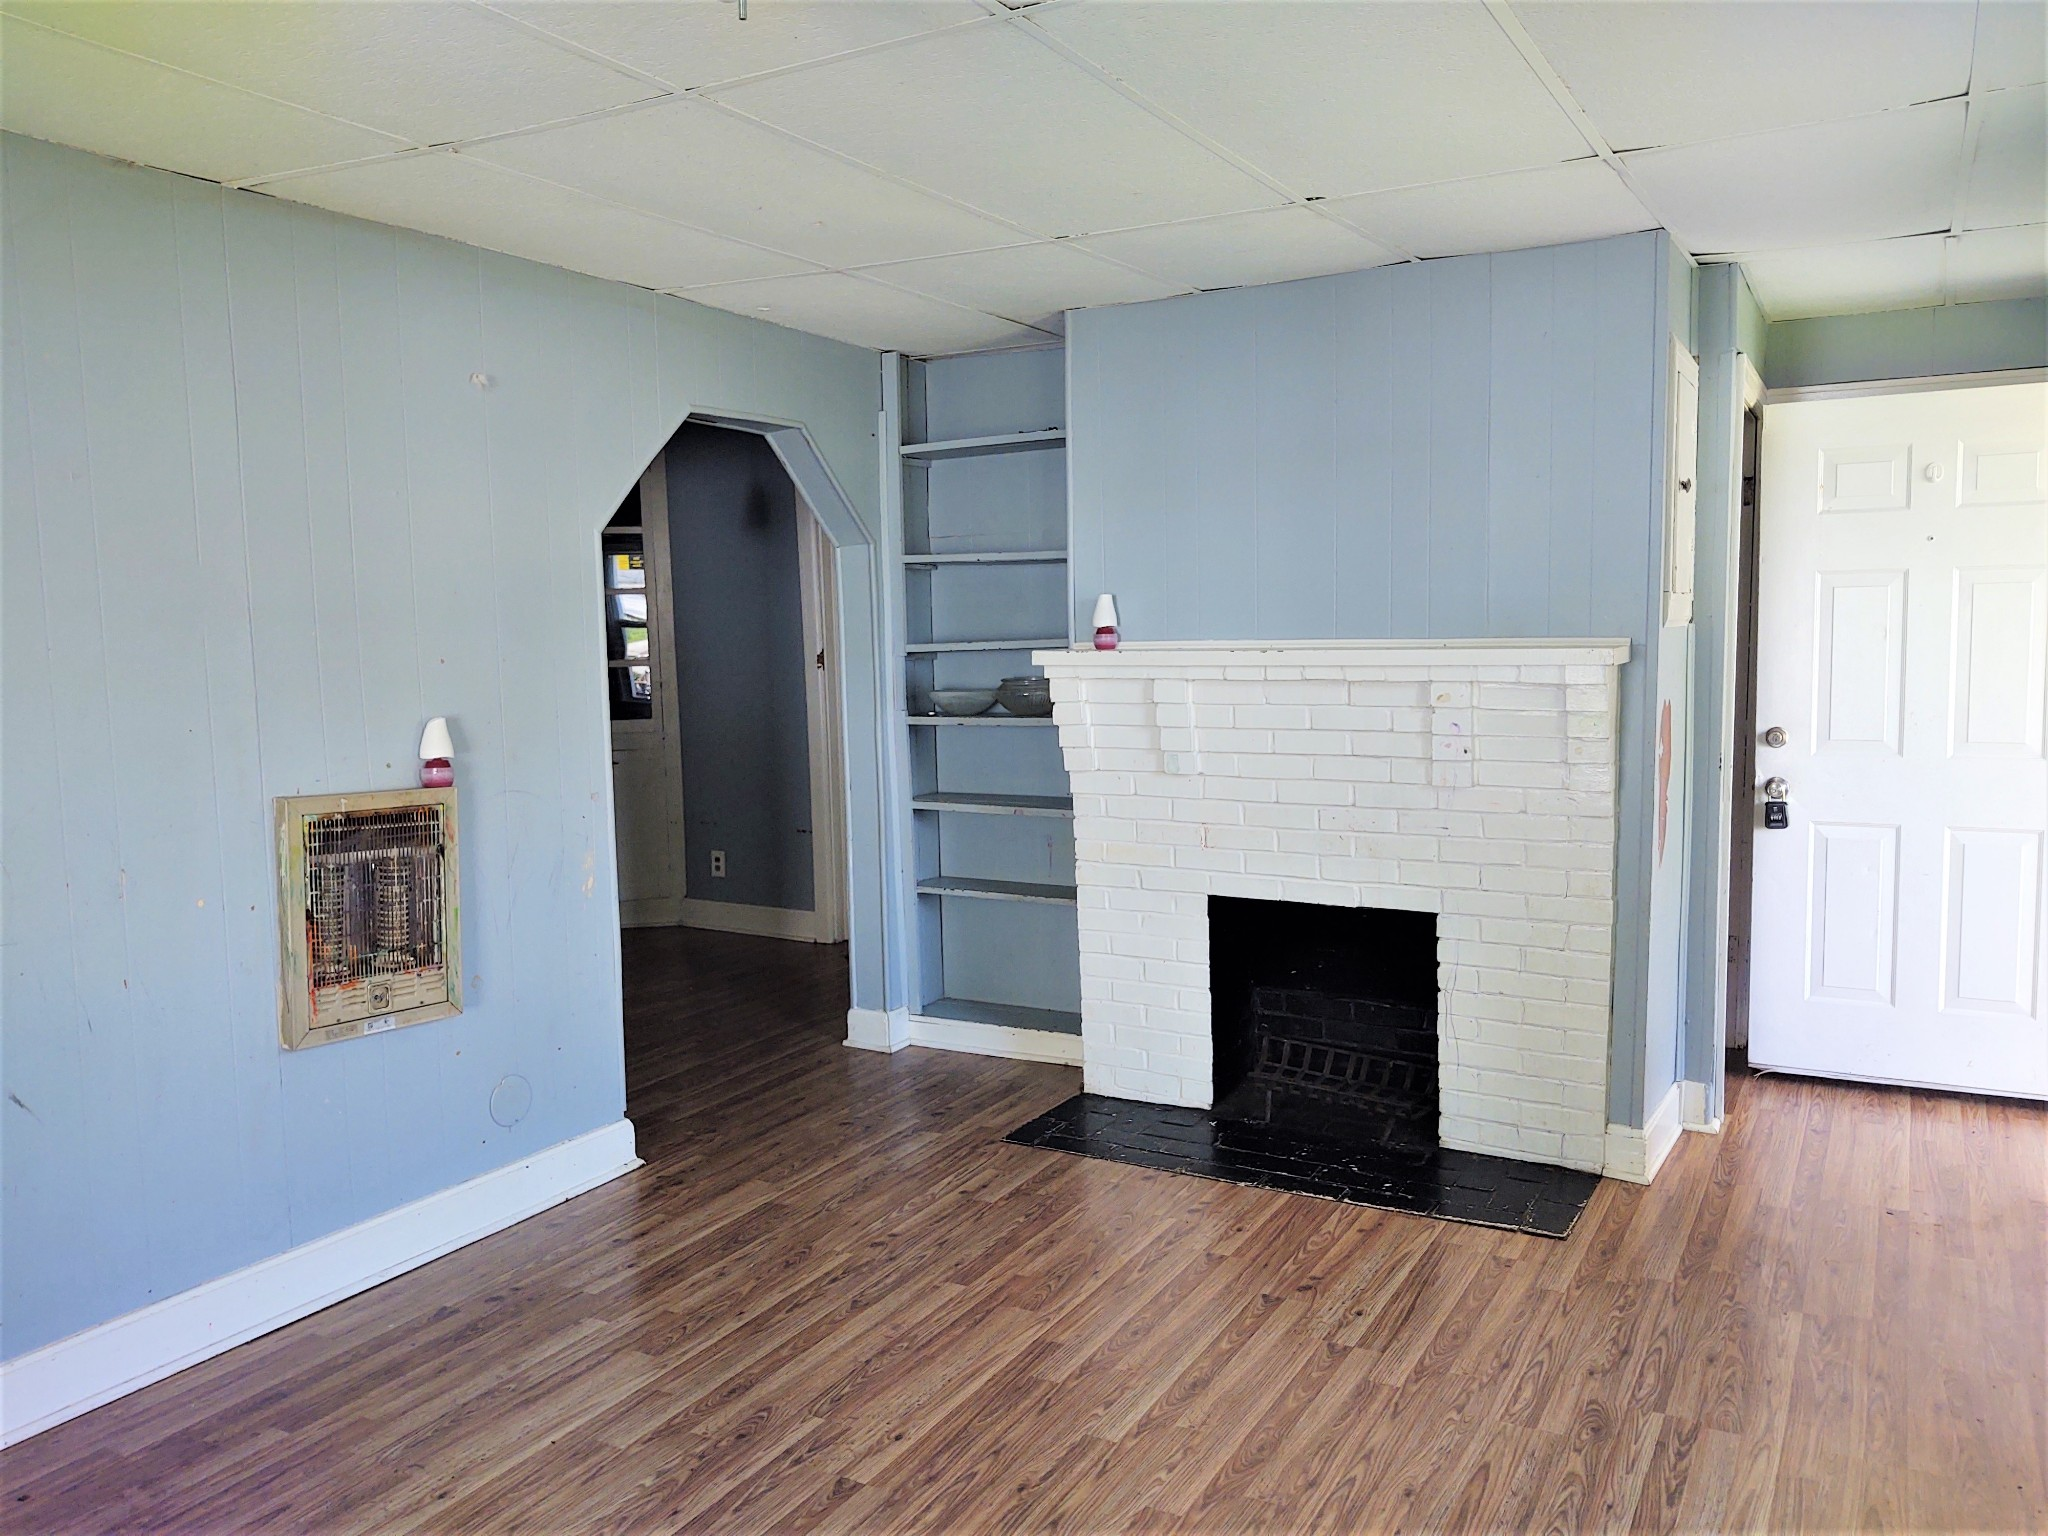 Investor special! Check out this two bedroom, (could easily be three bedroom) one bath home in the heart of Gallatin. Upstairs attic area could be used for additional bedrooms or for hobby room/ storage. Cash or conventional loan only. Being sold as is.